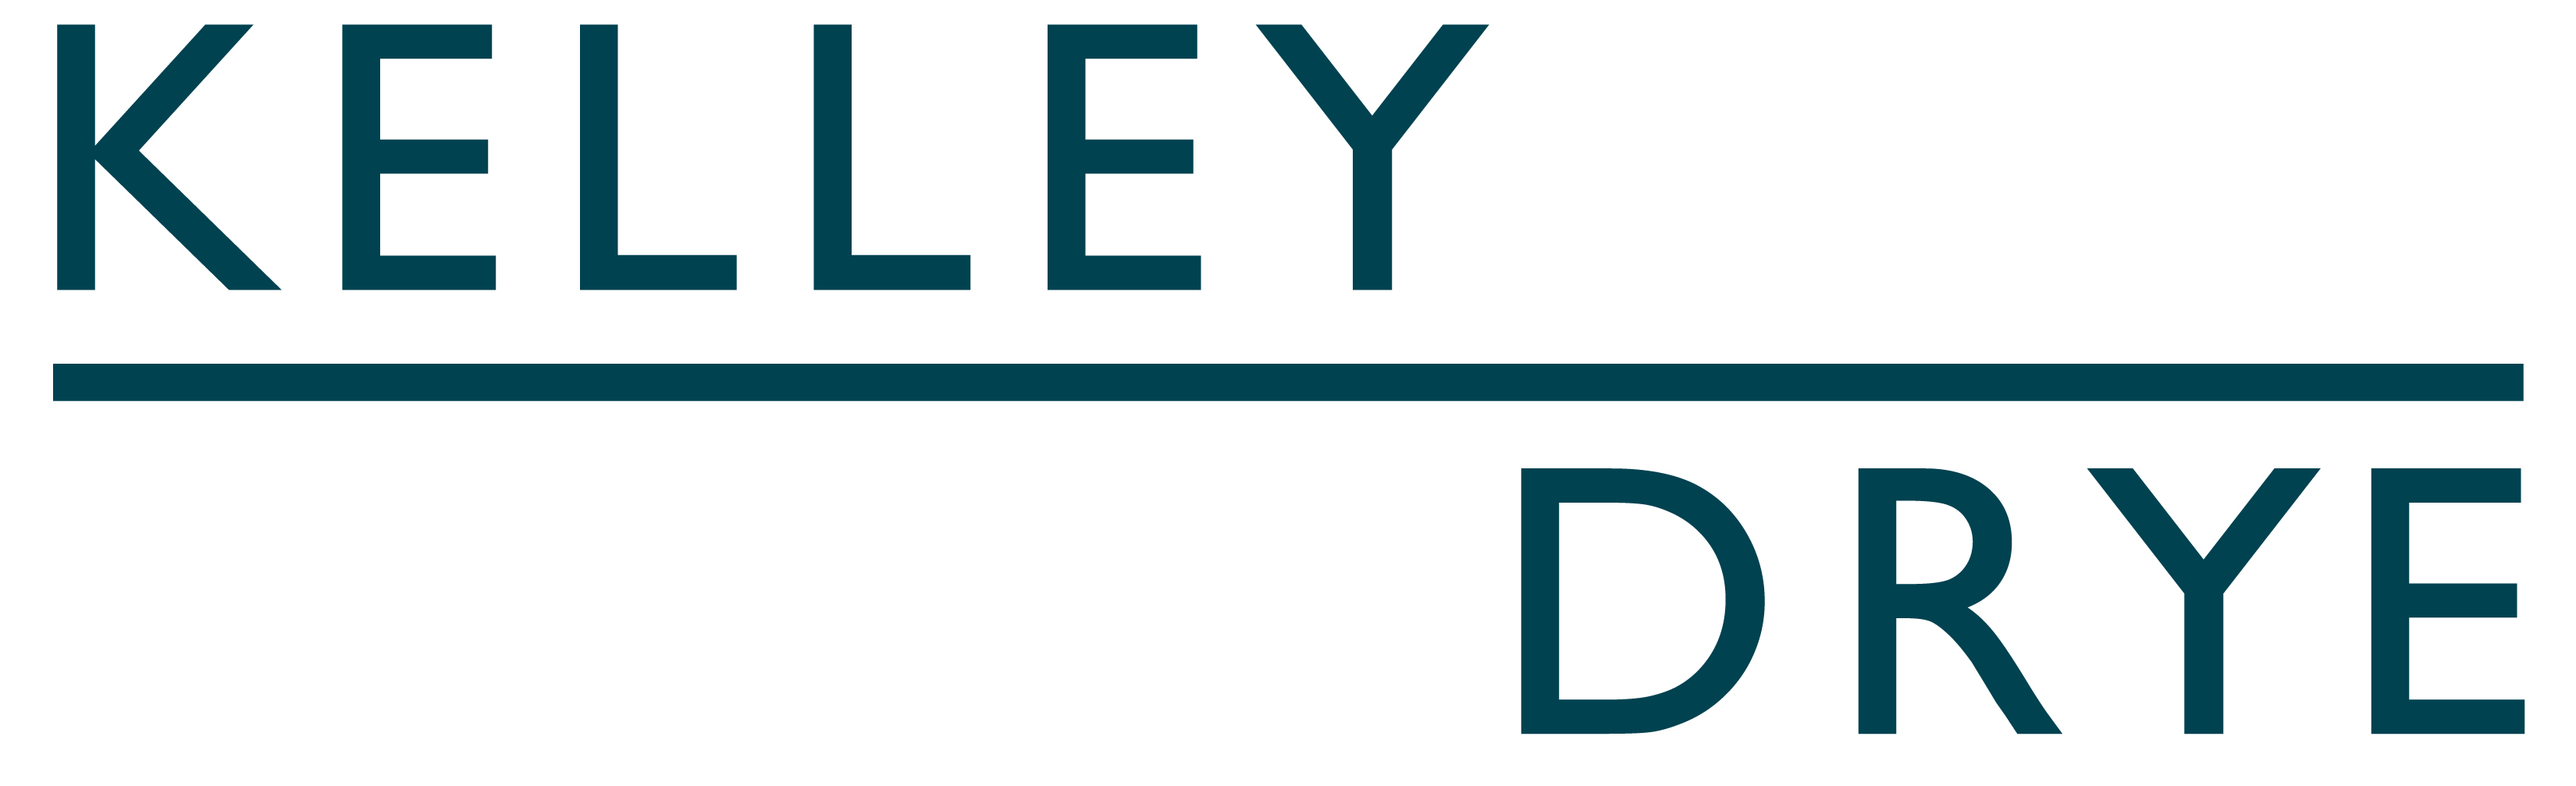 Kelley-Drye-for-signage